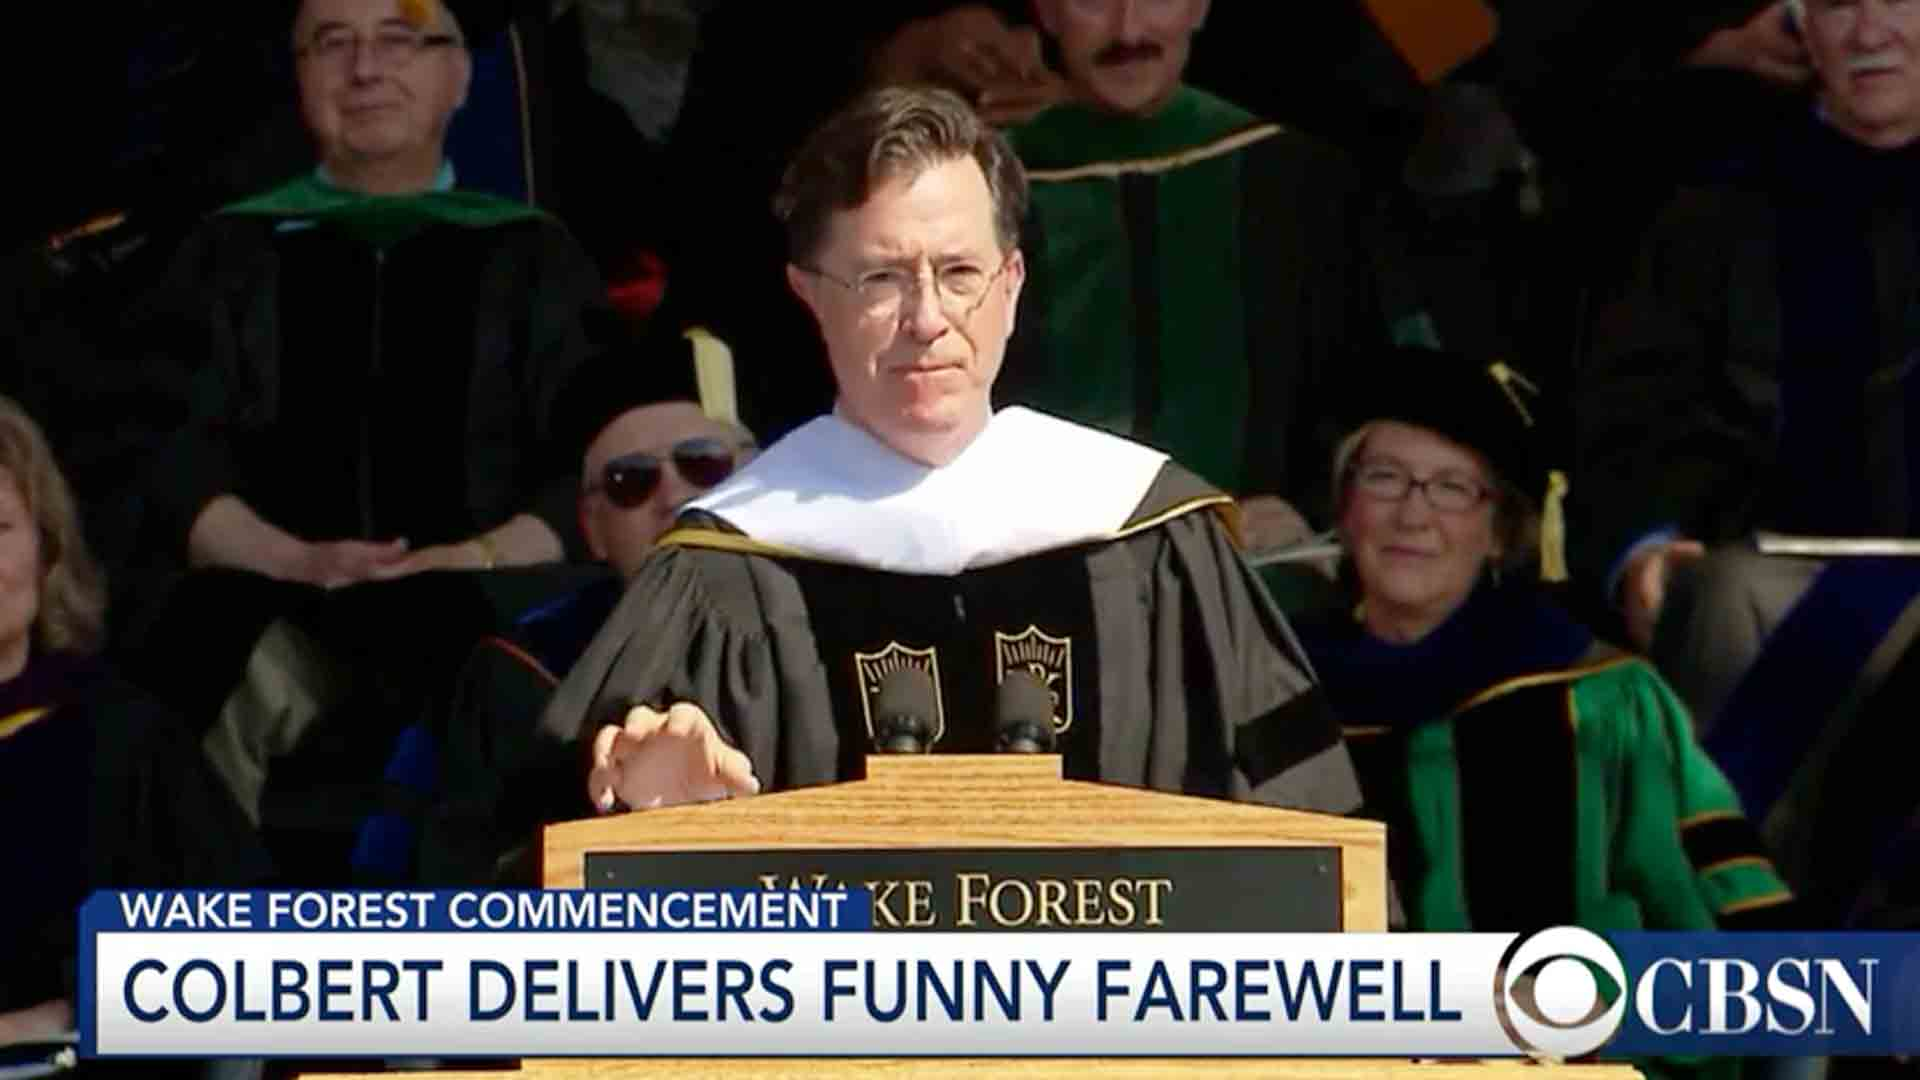 Stephen Colbert's Commencement Address at Wake Forest University